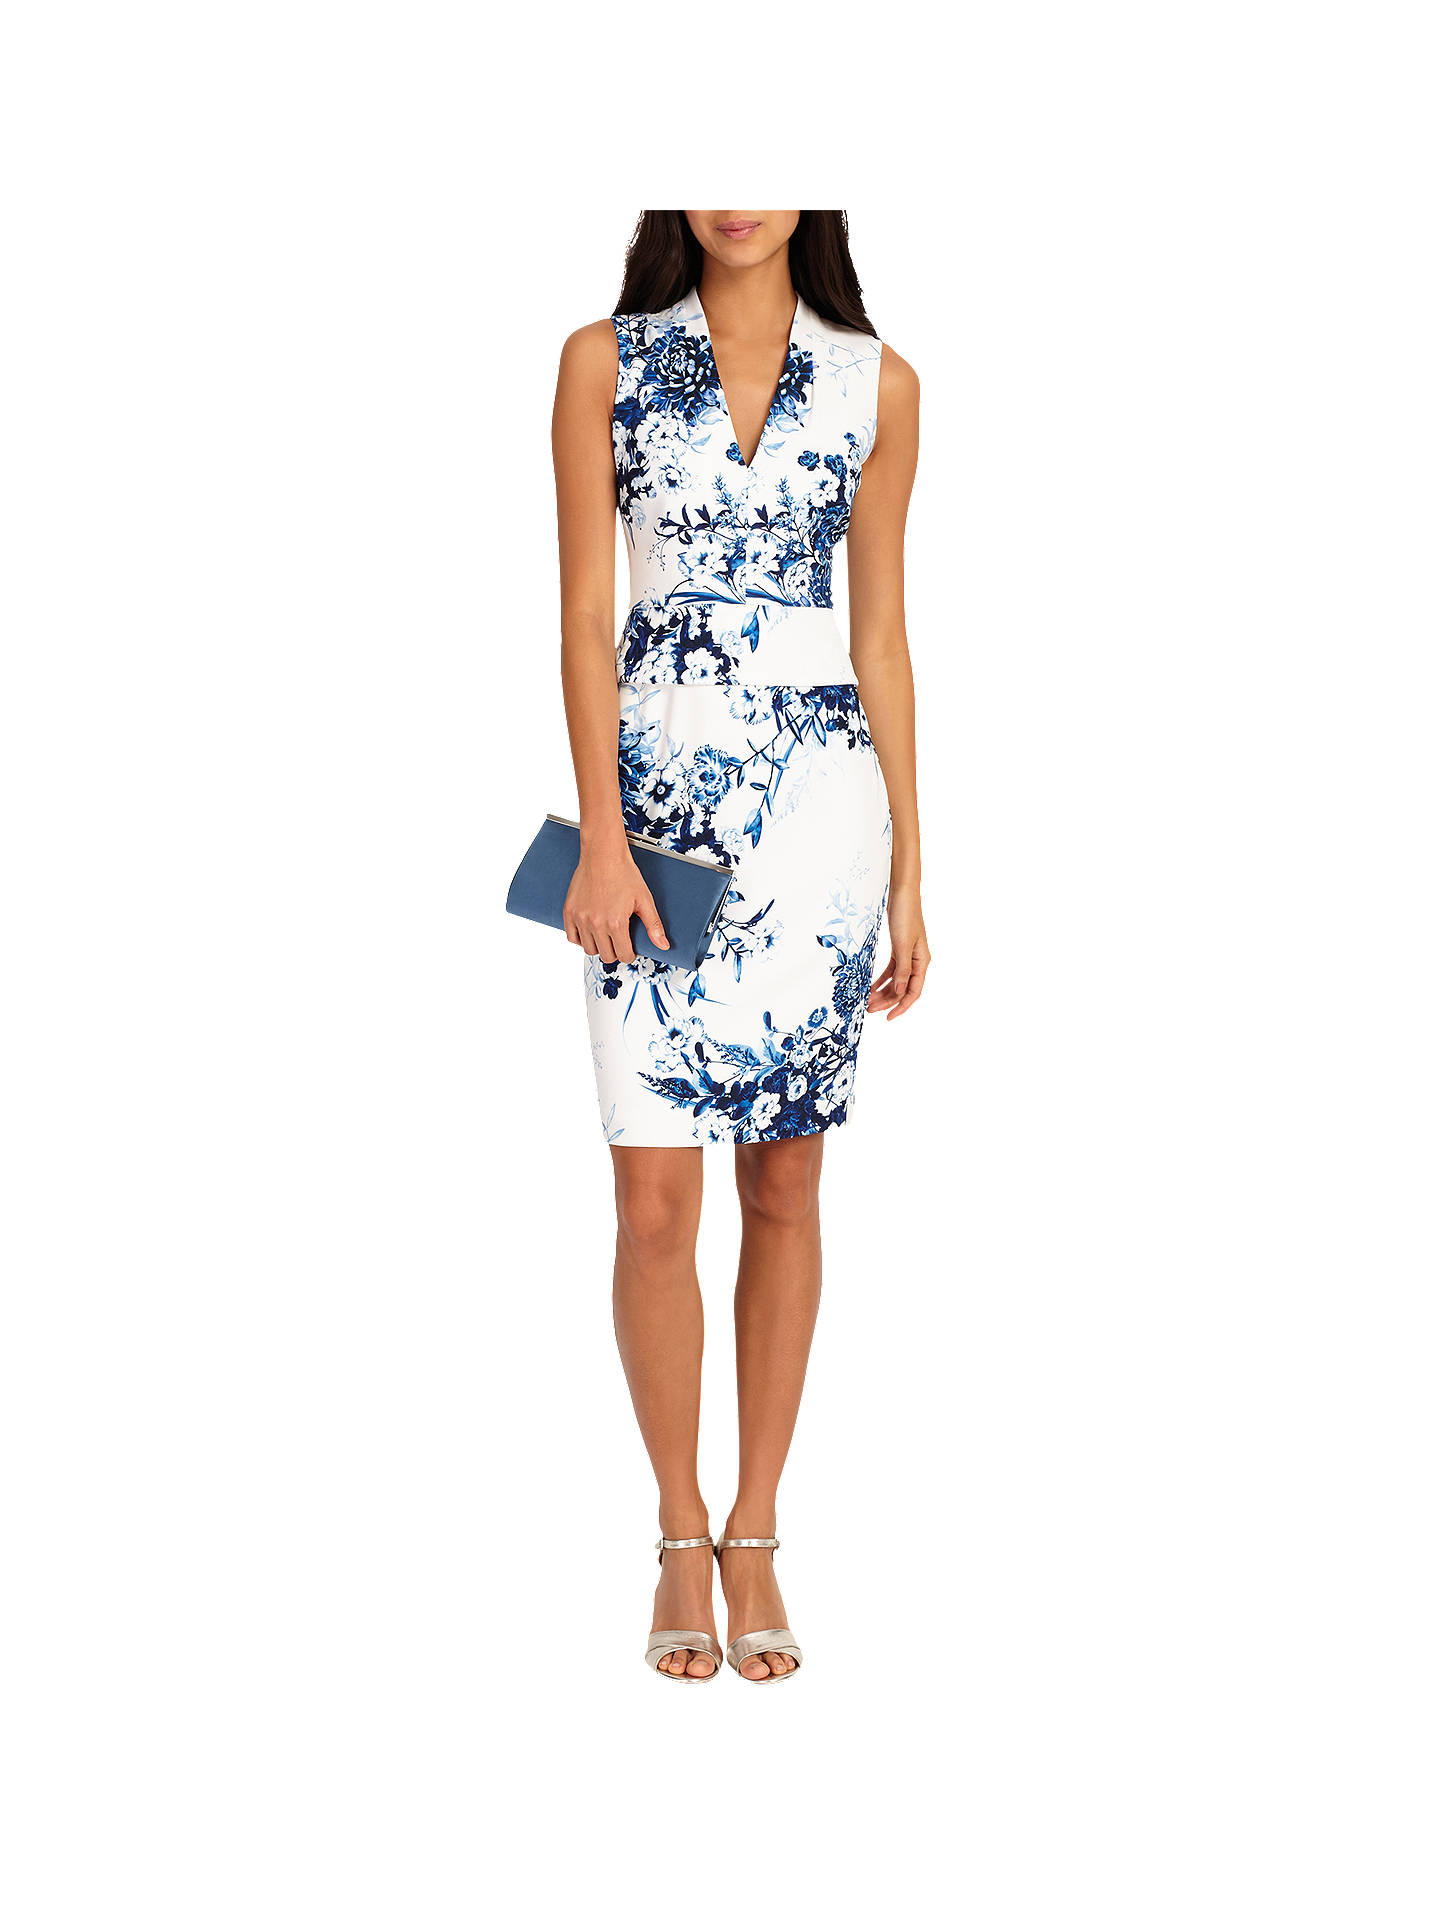 52313f32c0dde Buy Phase Eight Chinoiserie Print Dress, White, 6 Online at johnlewis.com  ...